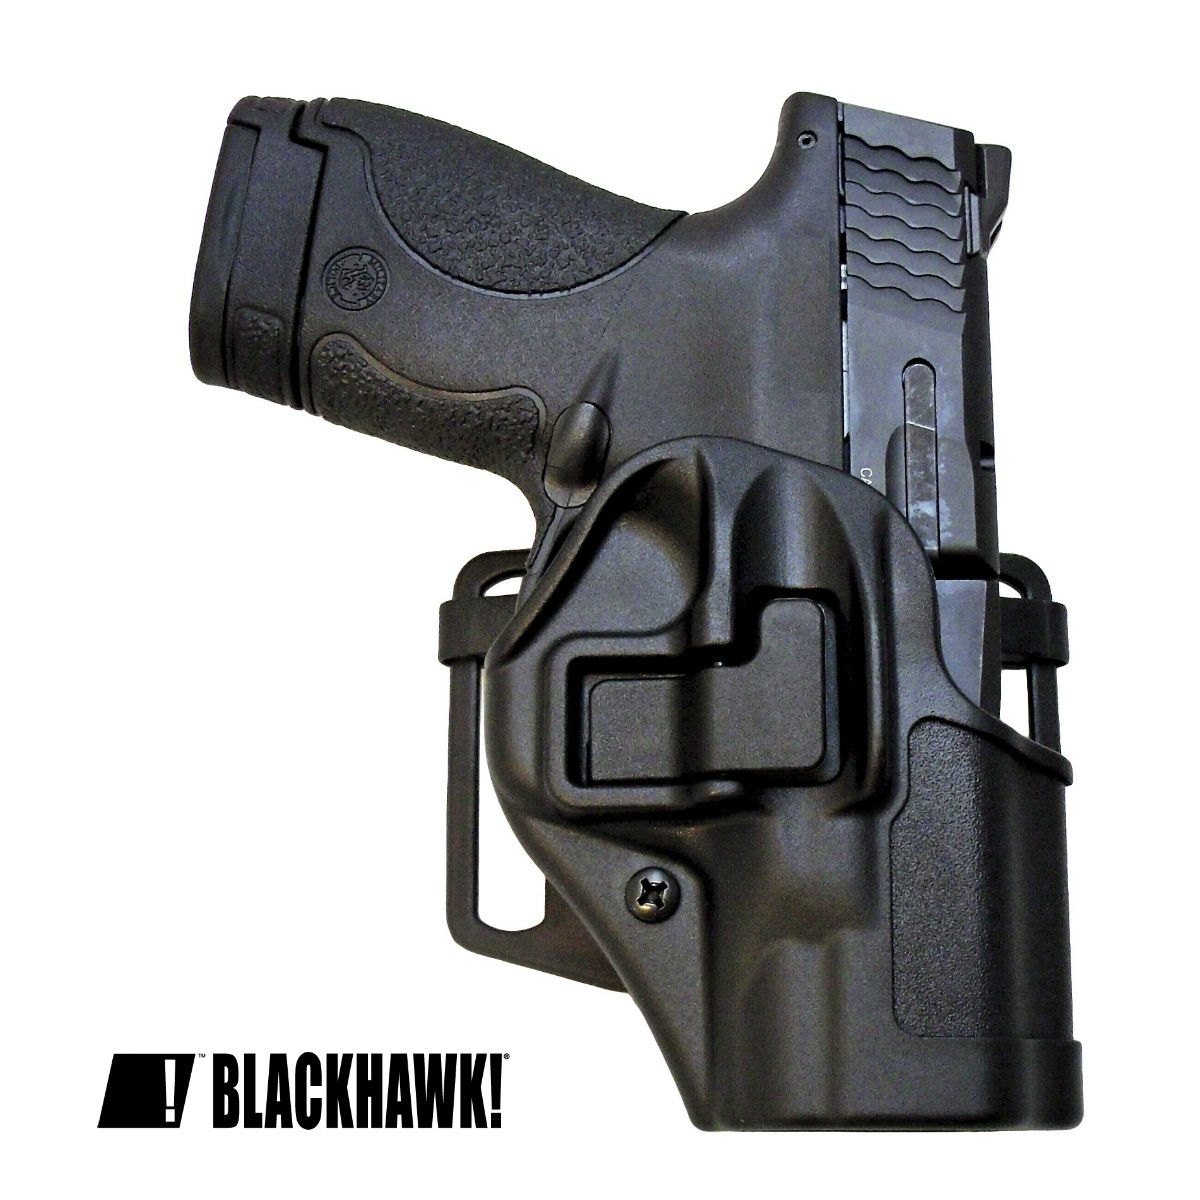 SERPA CQC Concealment Holster now available for S&W M&P